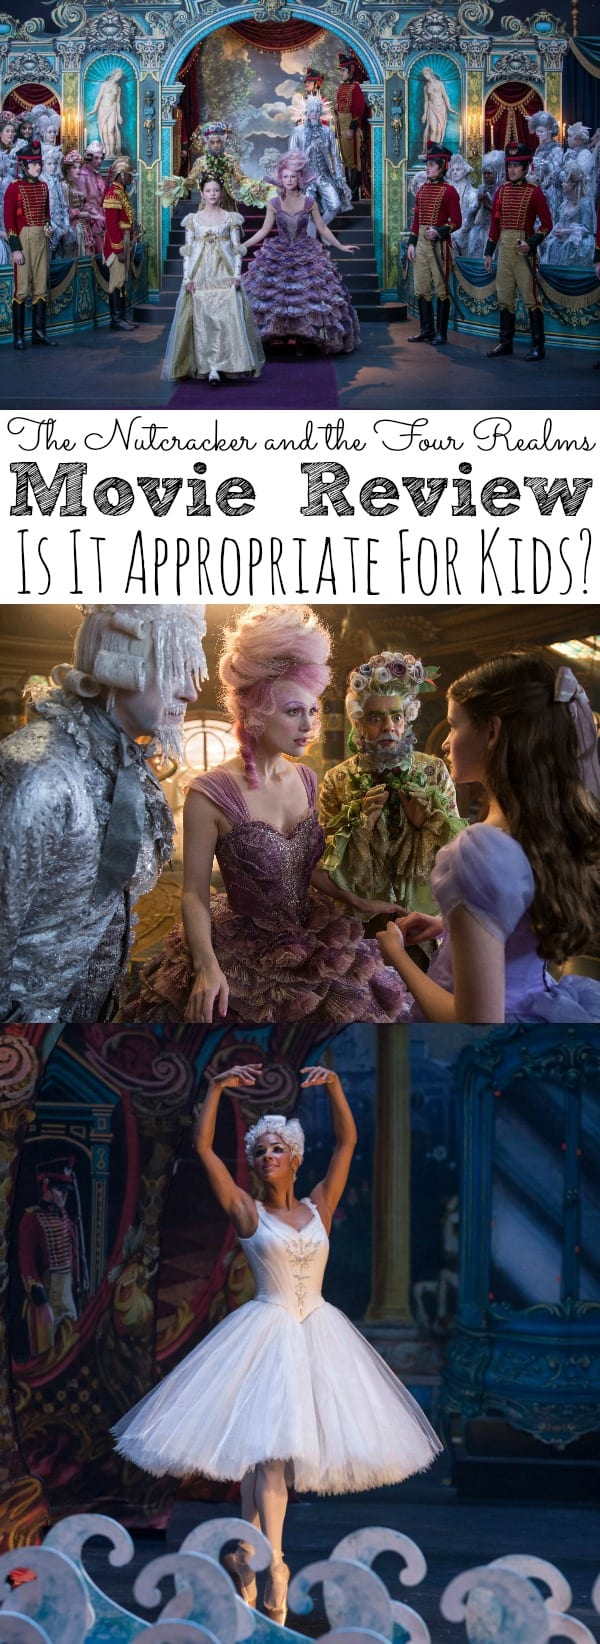 The Nutcracker Movie Review Appropriate For Kids